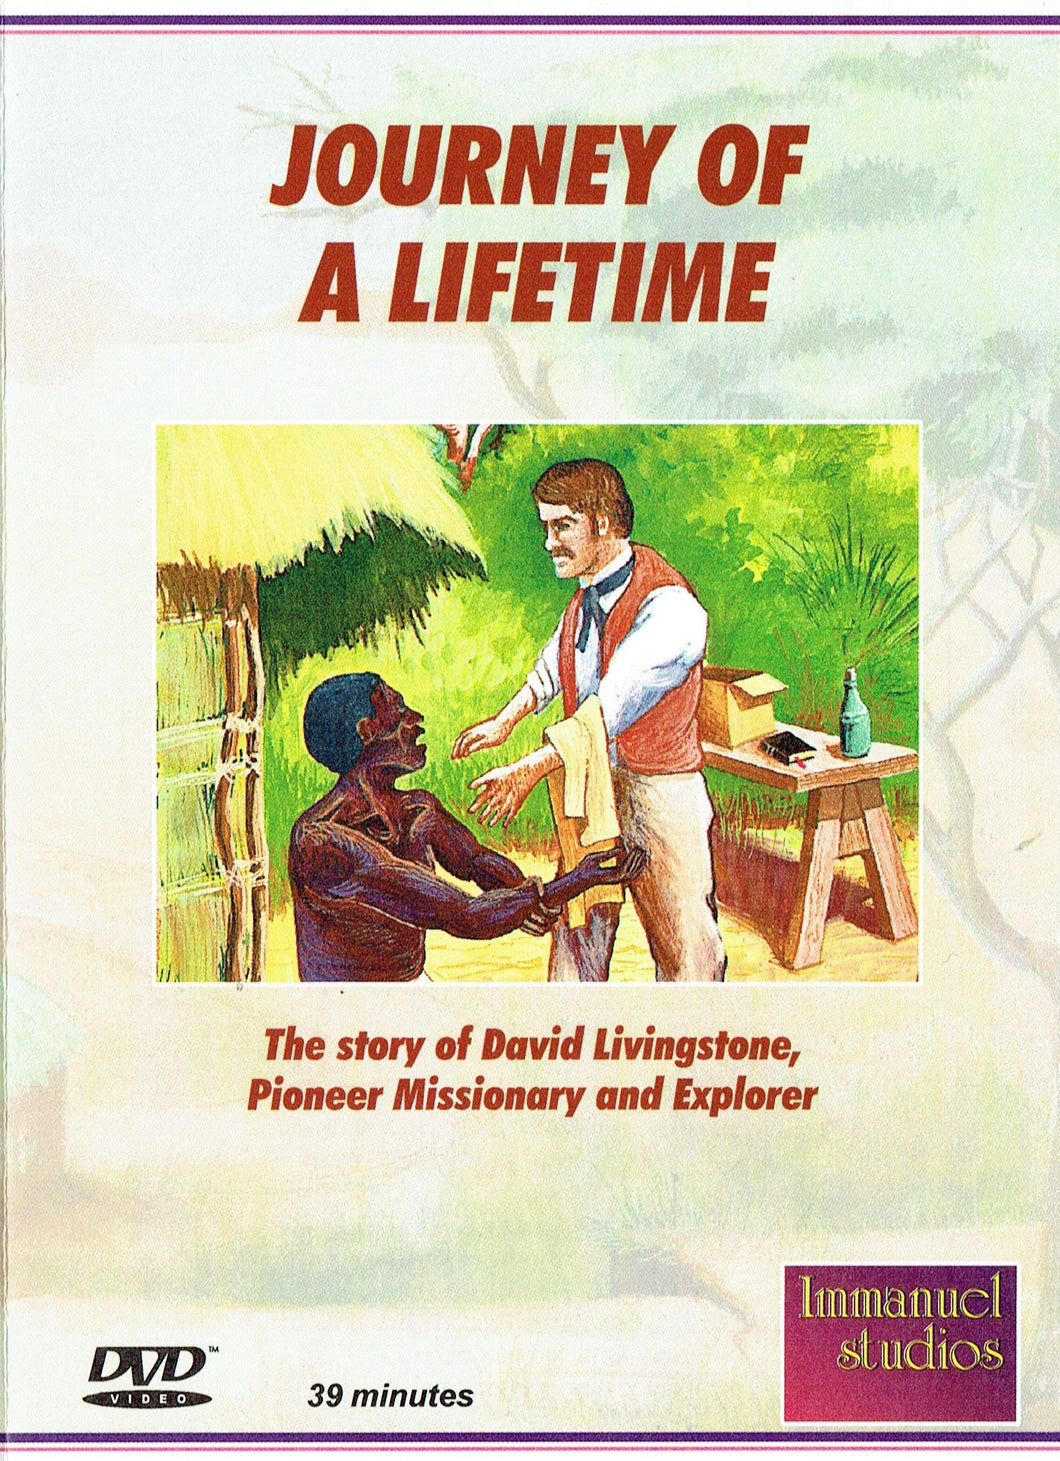 Journey of a Lifetime: The Story of David Livingstone, Pioneer Missionary and Explorer